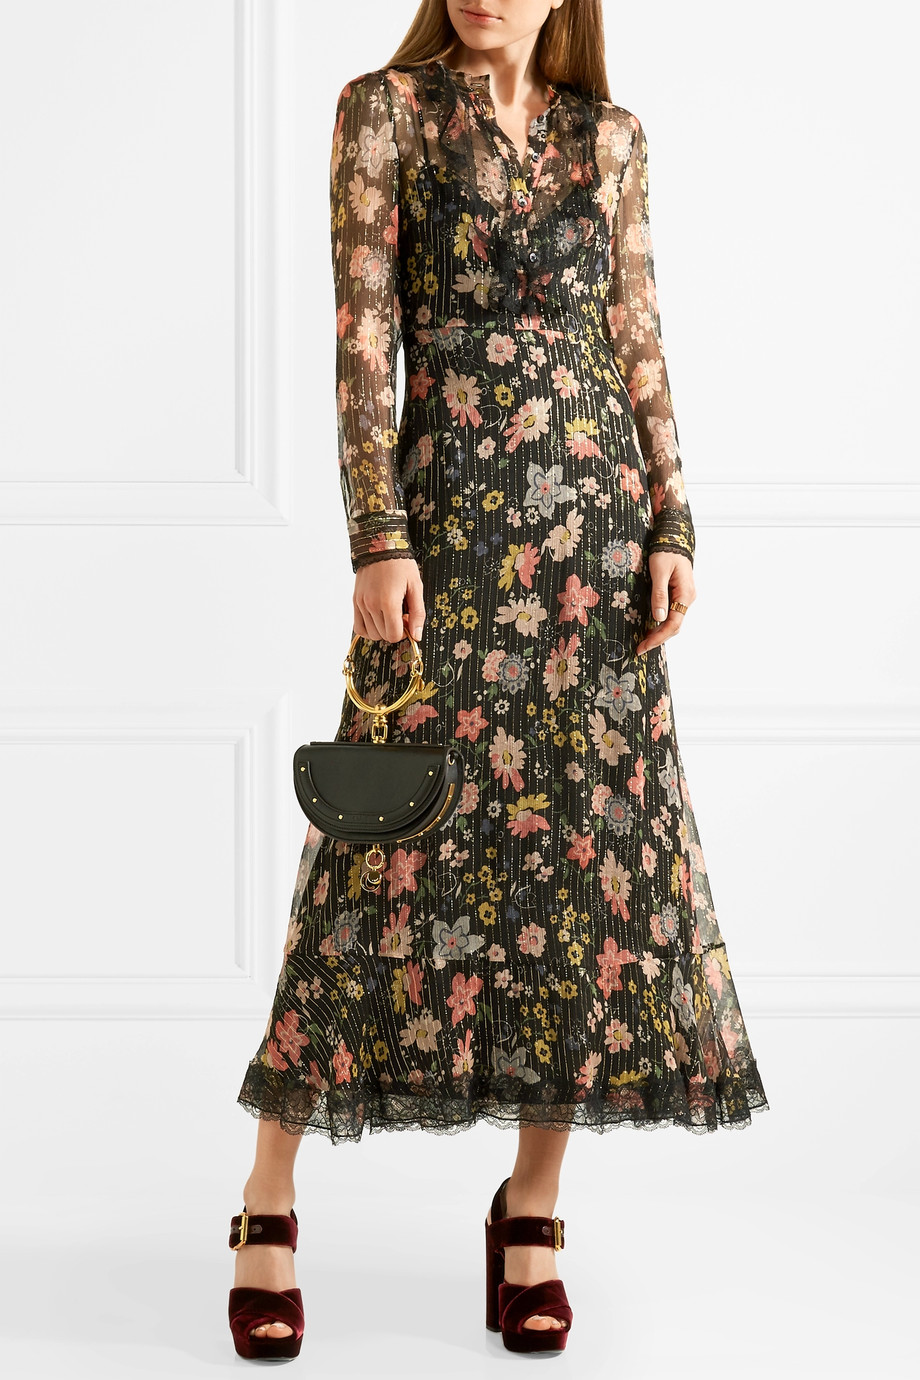 Abito tapestry Red Valentino